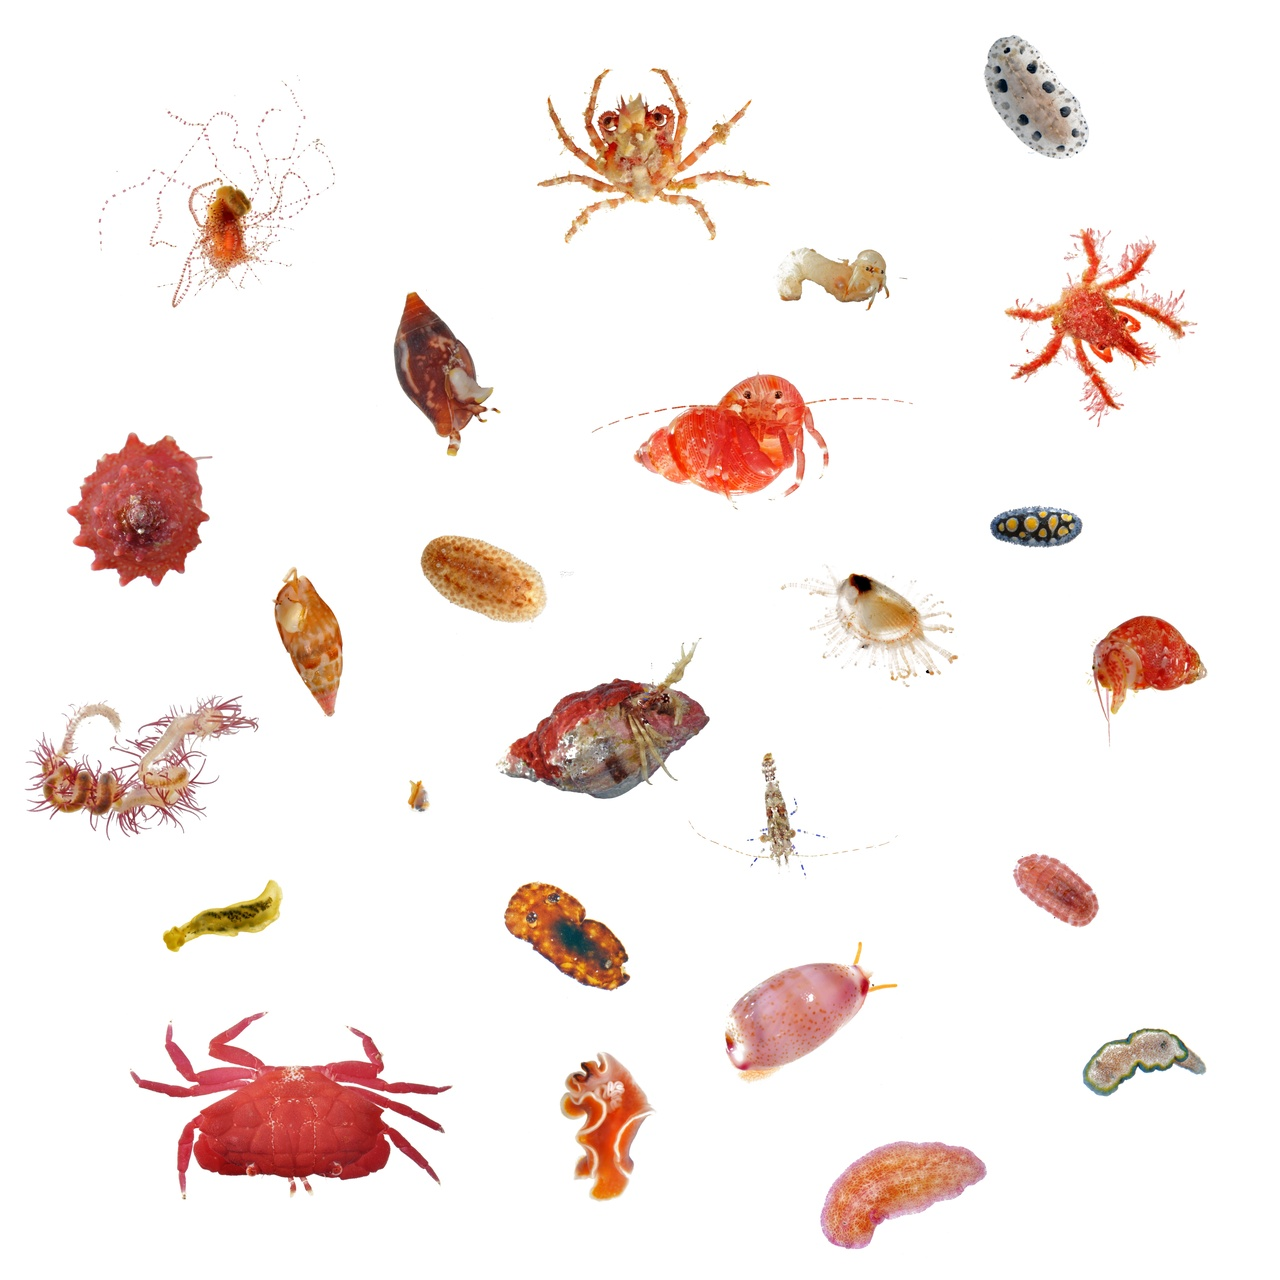 Here's a sample of some of the small sea creatures we find in the ARMS (autonomous reef monitoring structures). We get crabs, snails, nudibranchs, and shrimps, just to name a few! (Photo: NOAA Fisheries/Evan Barba)